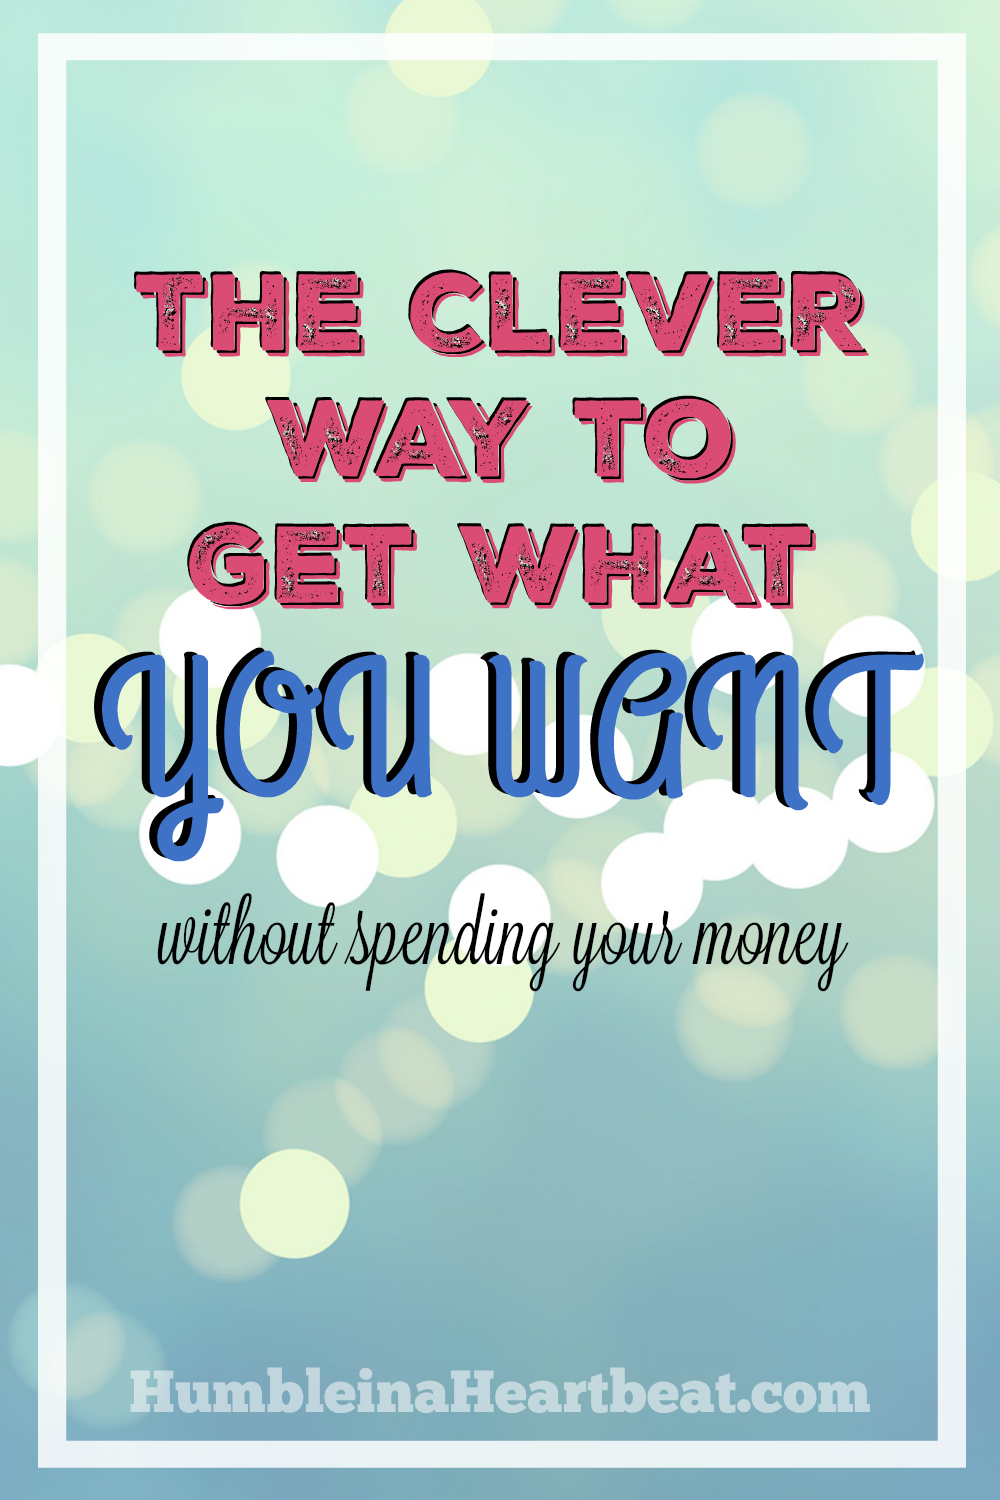 When you have no money to spend on what you really desire it can be tough. Use this one clever trick to get what you want whether you are penniless, trying to get out of debt, or want to save your money.